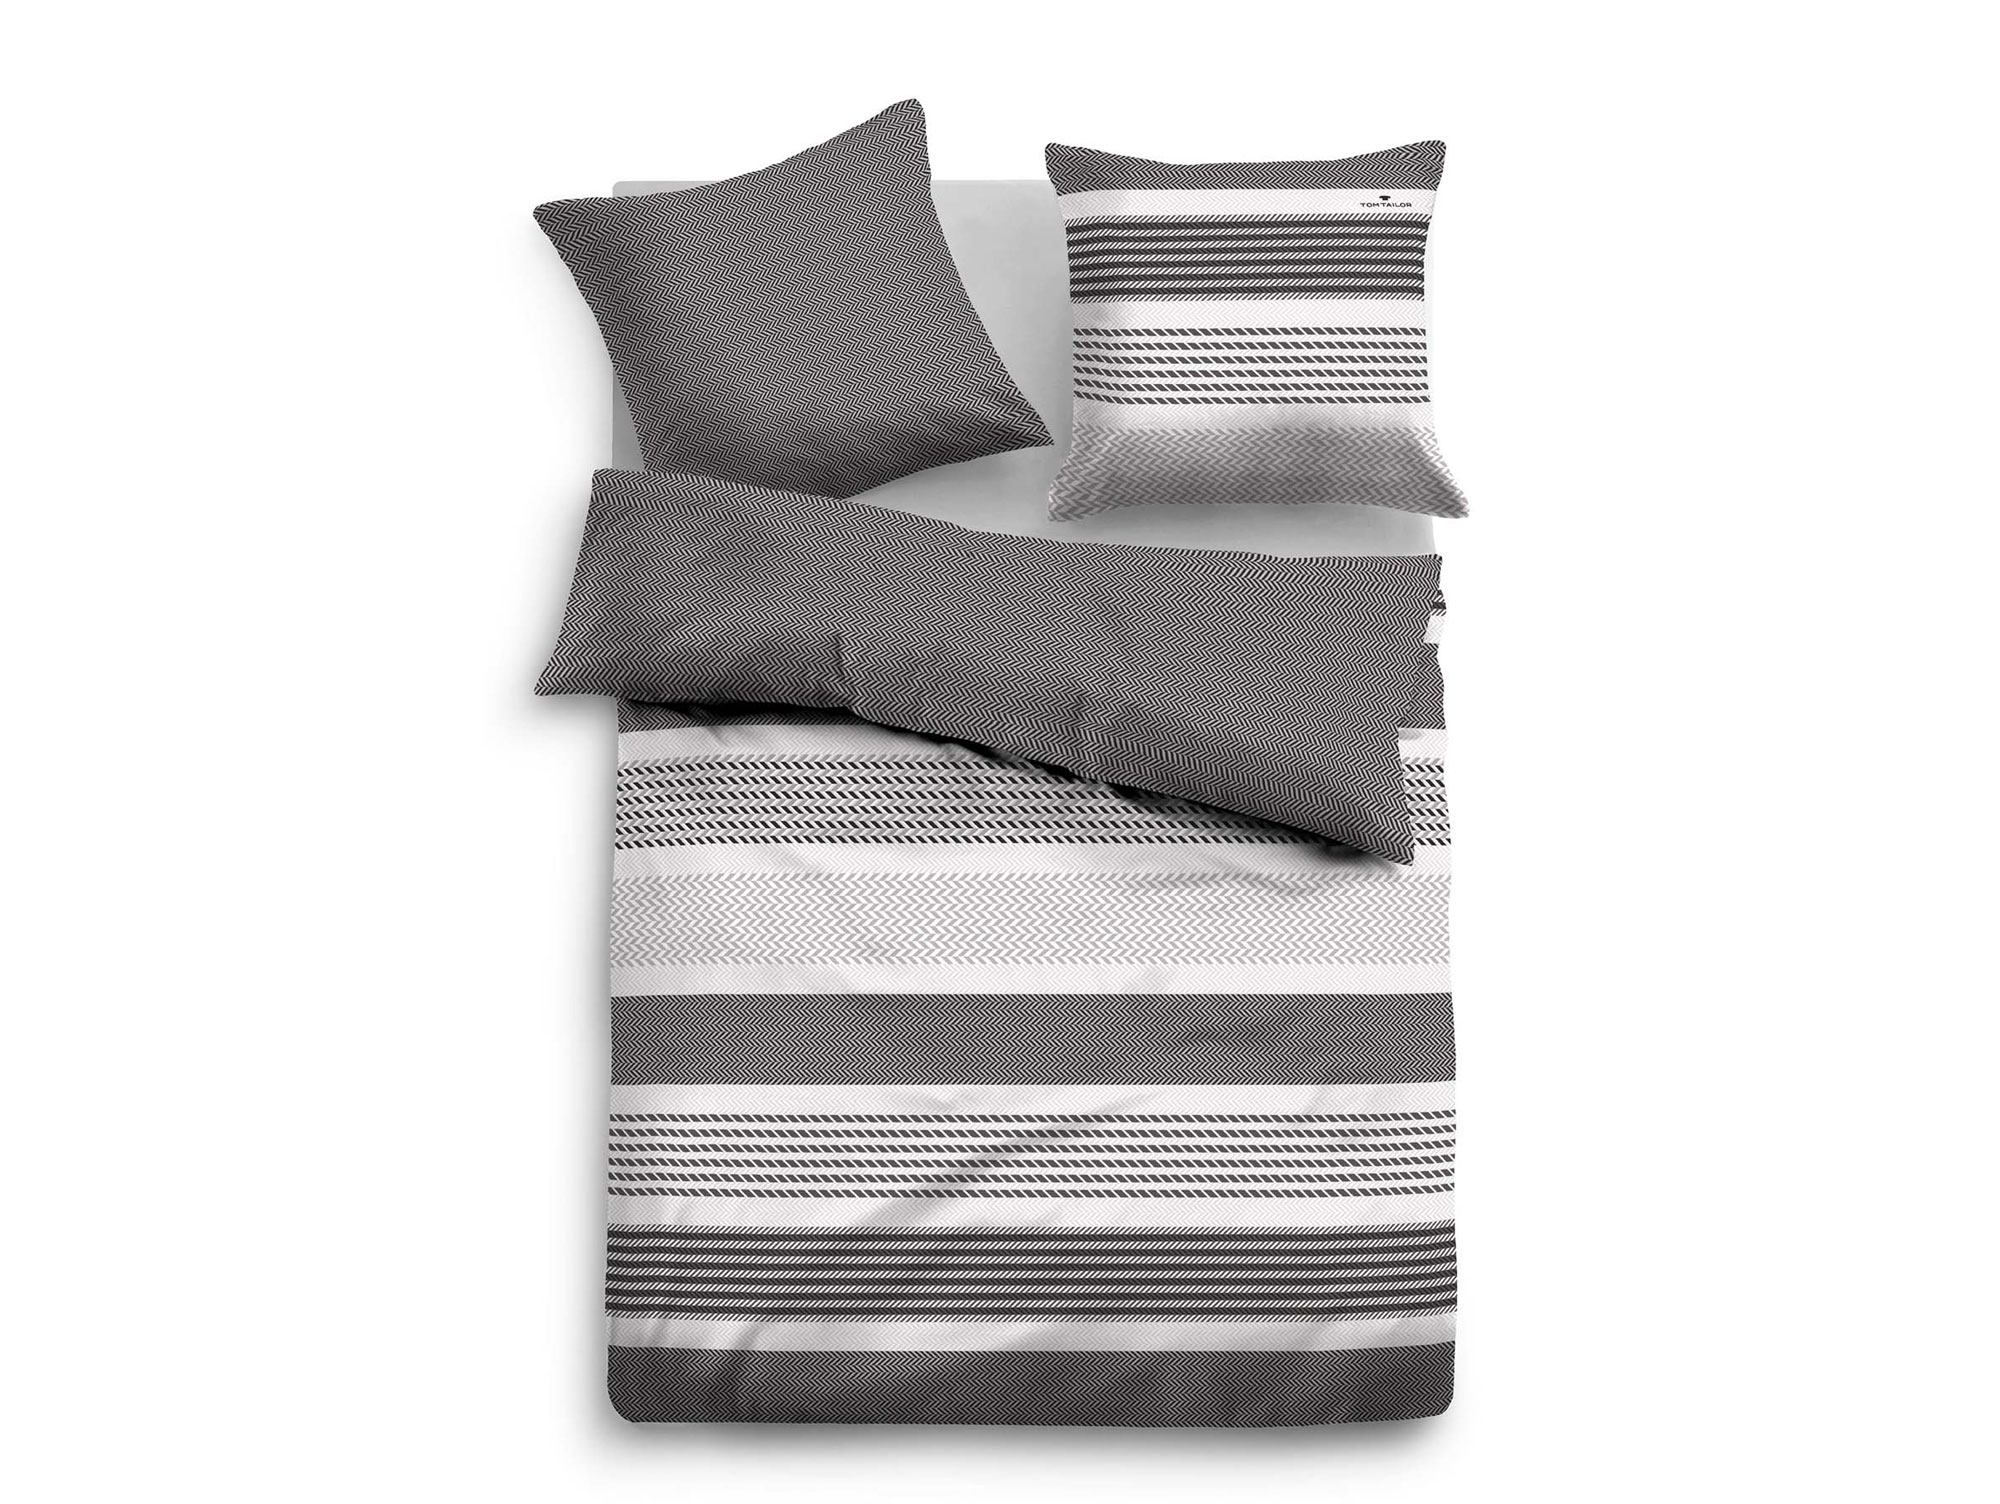 tom tailor bettw sche satin bed linen 135x200 80x80 cm. Black Bedroom Furniture Sets. Home Design Ideas